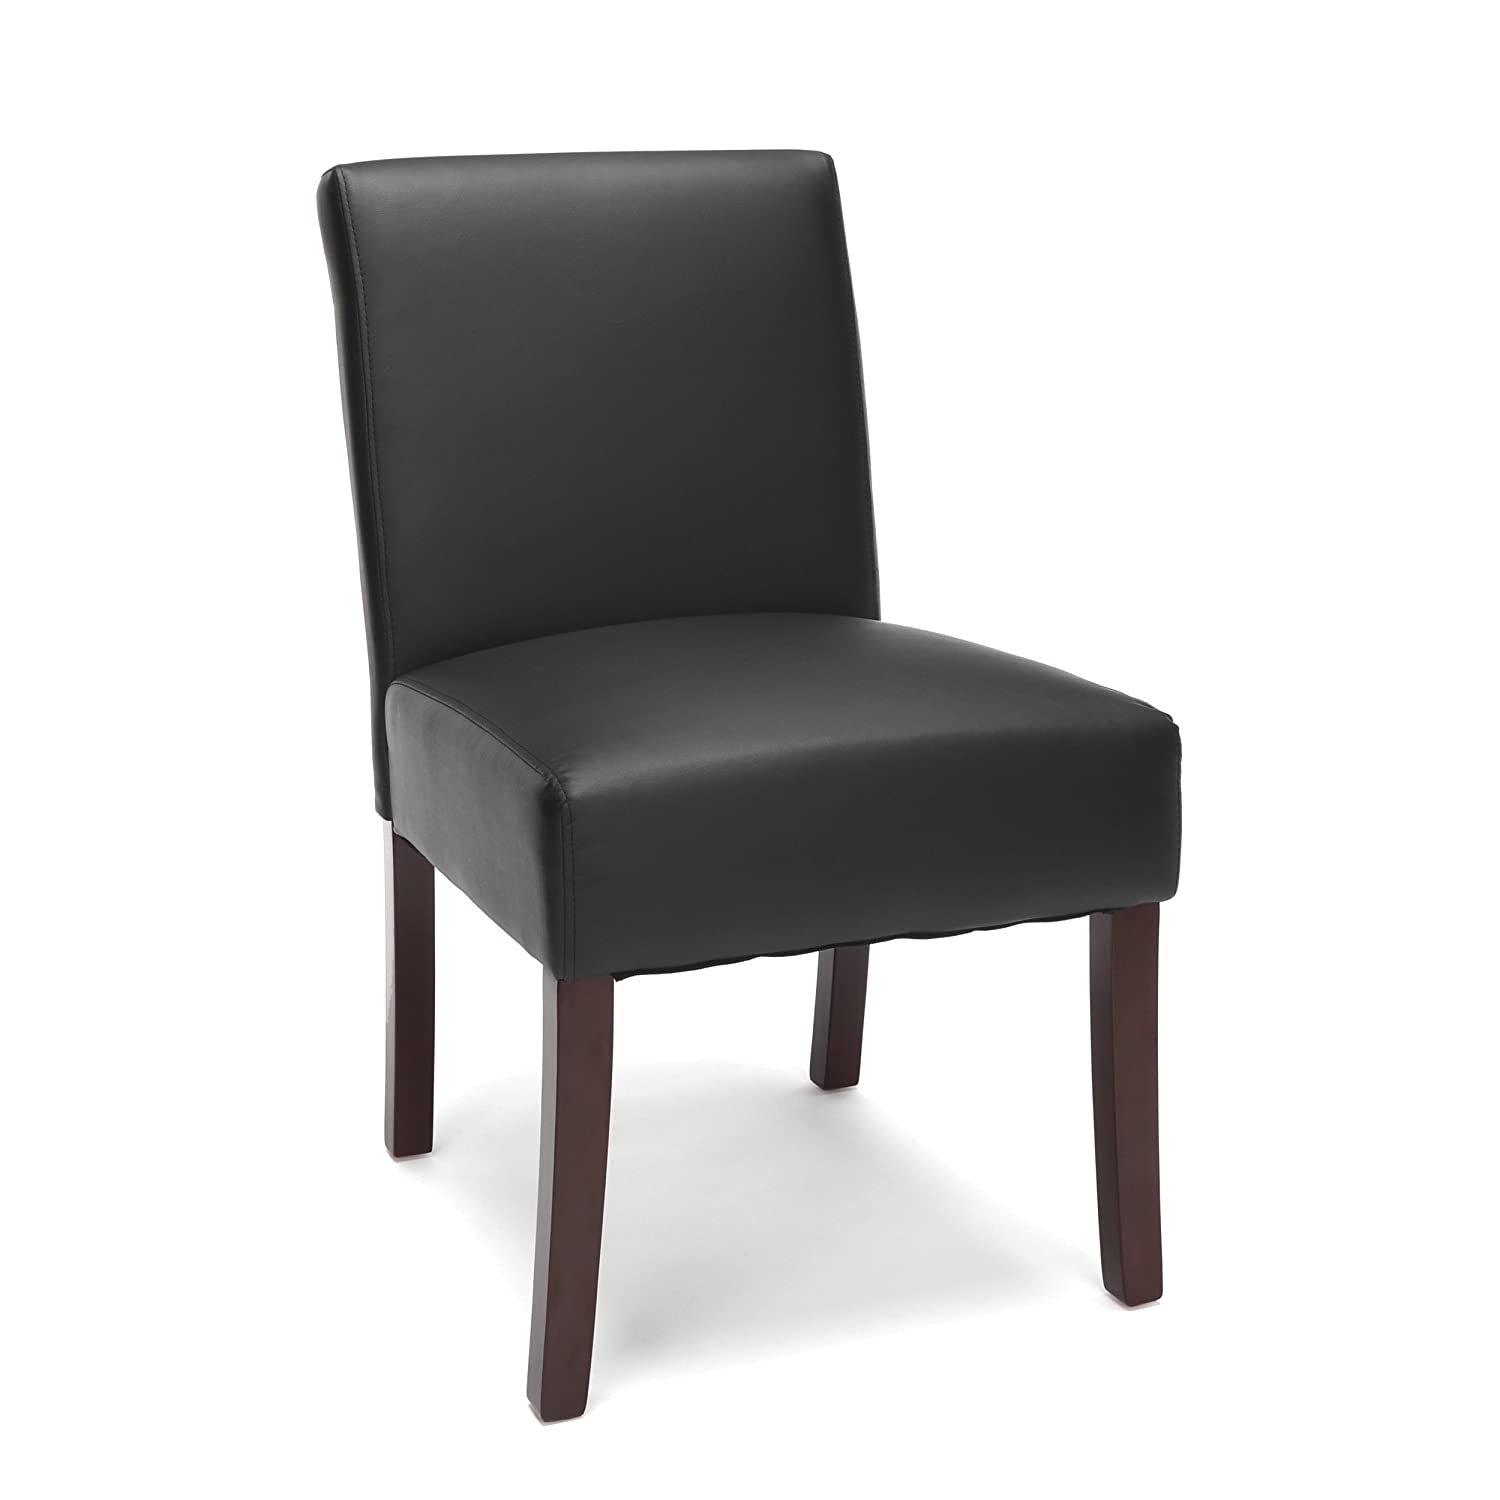 Essentials Executive Guest Chair - Armless Leather Reception Chair, Black